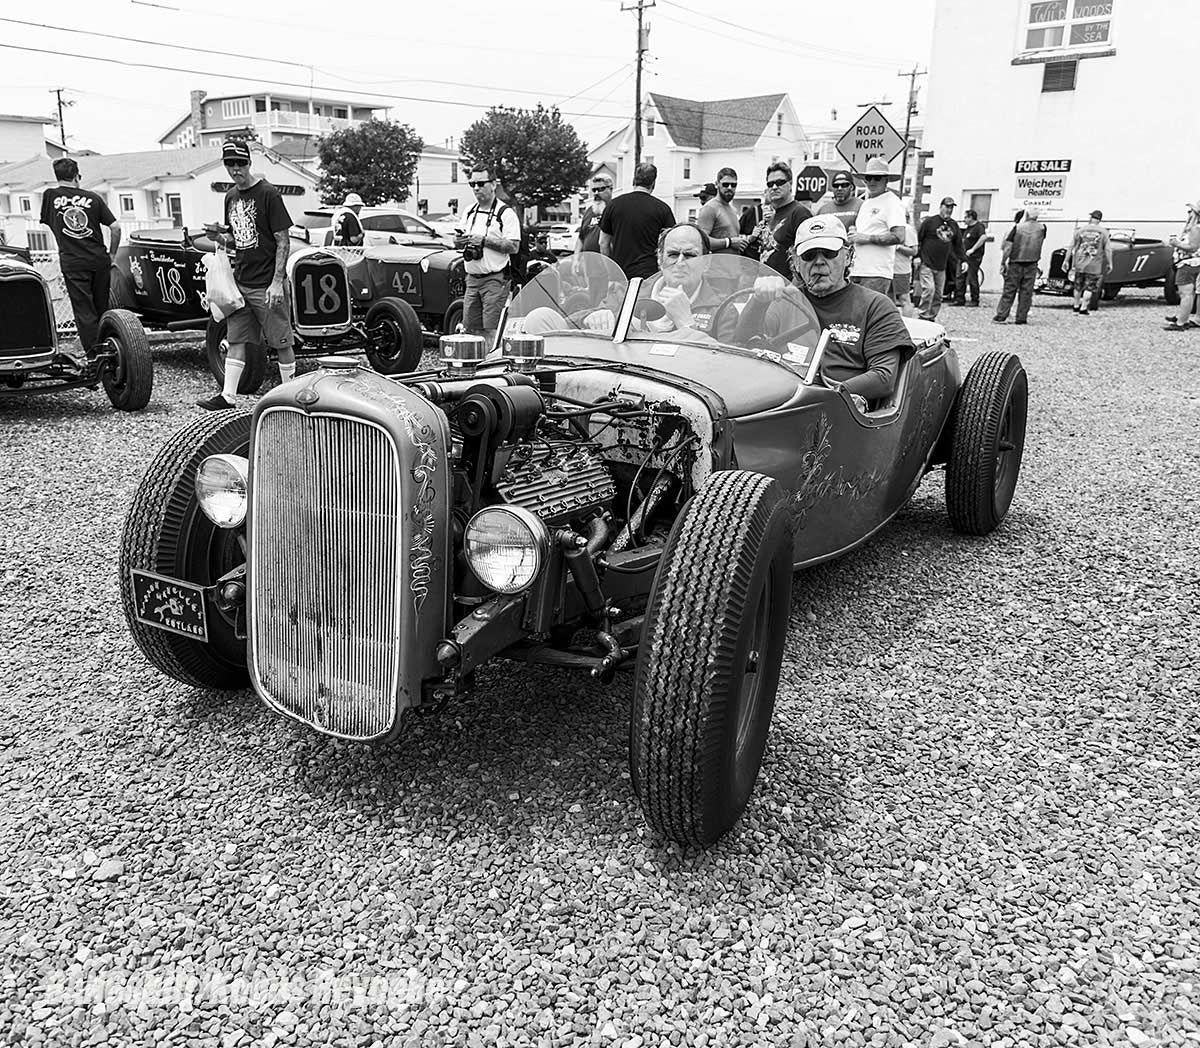 The-Race-of-Gentlemen-Kobus-Reyneke-115_sml.jpg